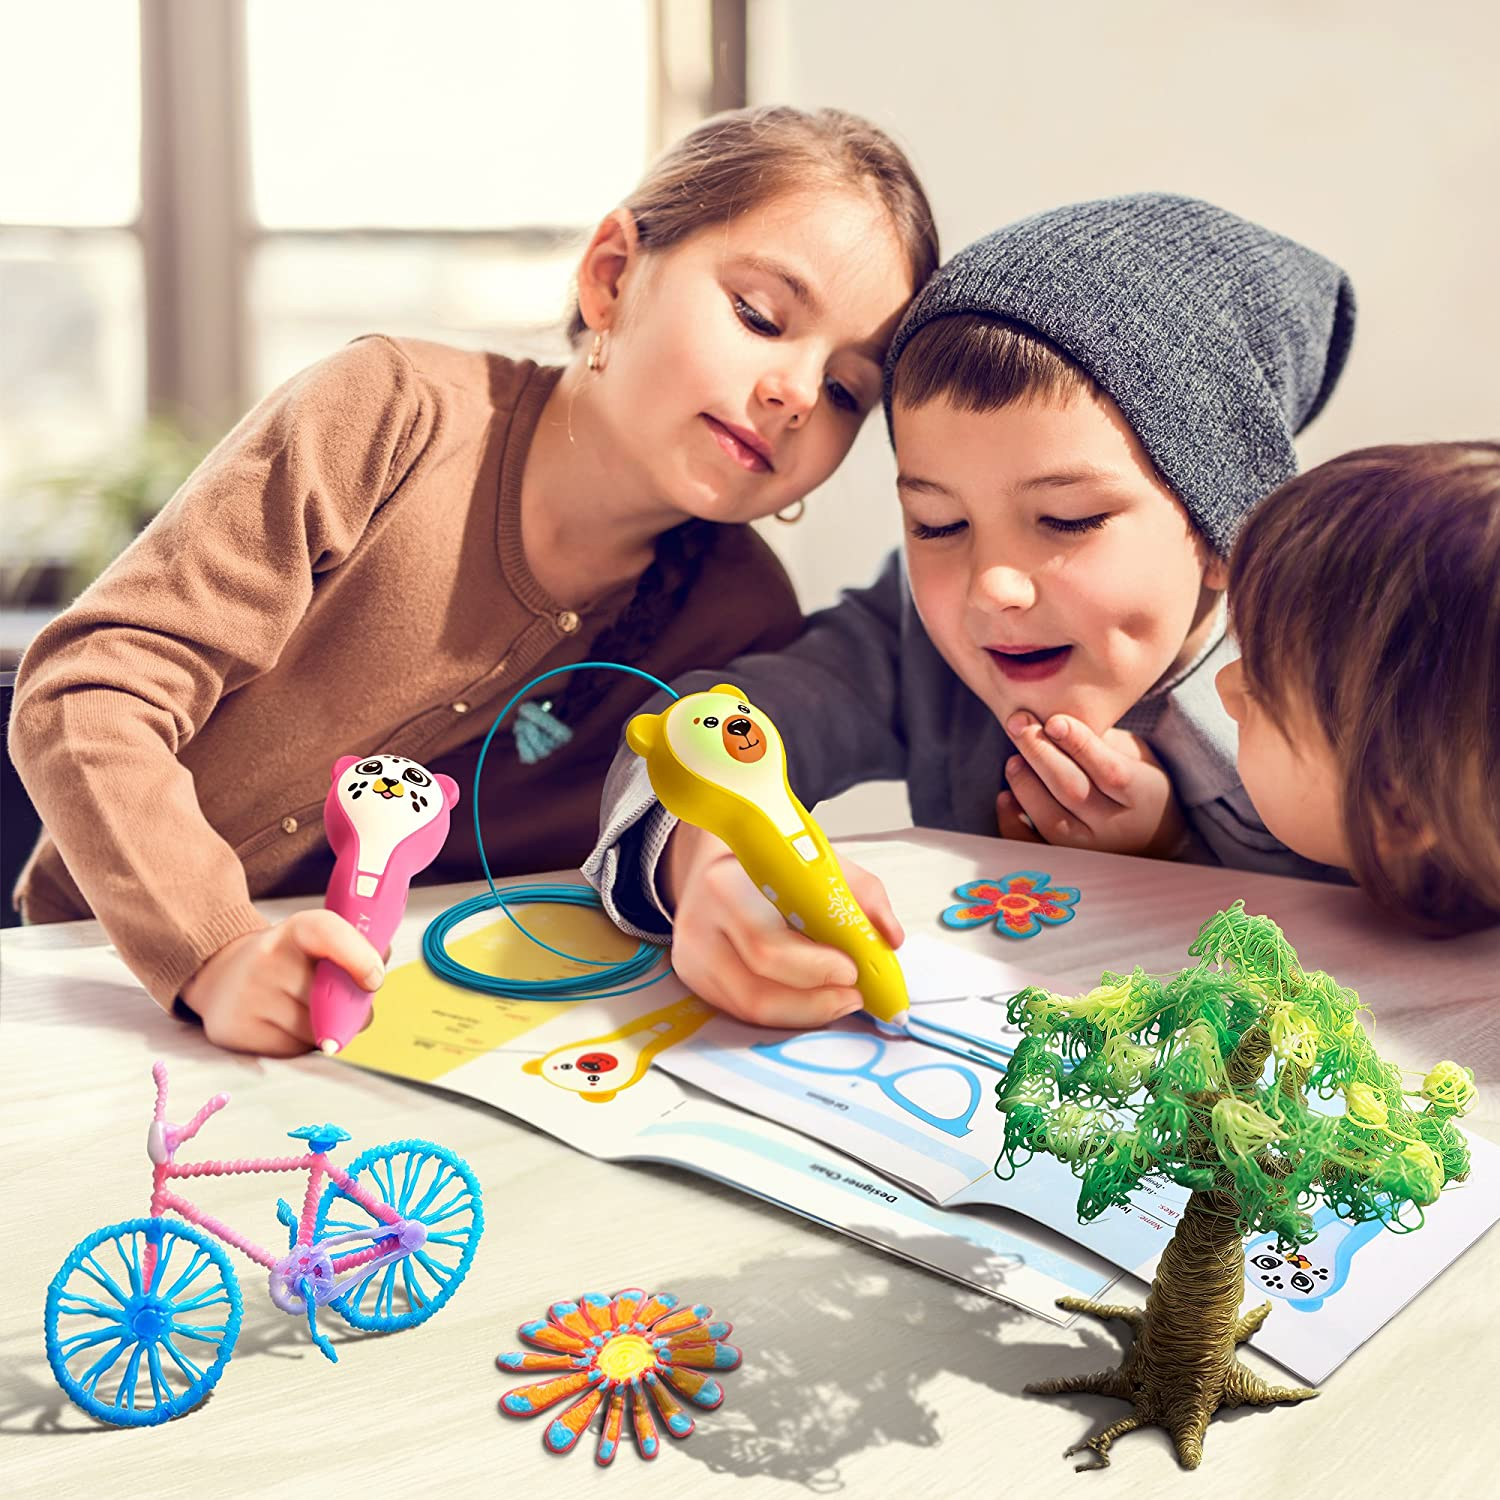 MeDoozy 3D Pen Set Fun Creative Children Present Yellow Best Art Supplies for Kids Teens Cool Arts and Crafts for Girls Boys Top Hobby 3D Drawing kit Ideal Girl Gifts for Birthday Party